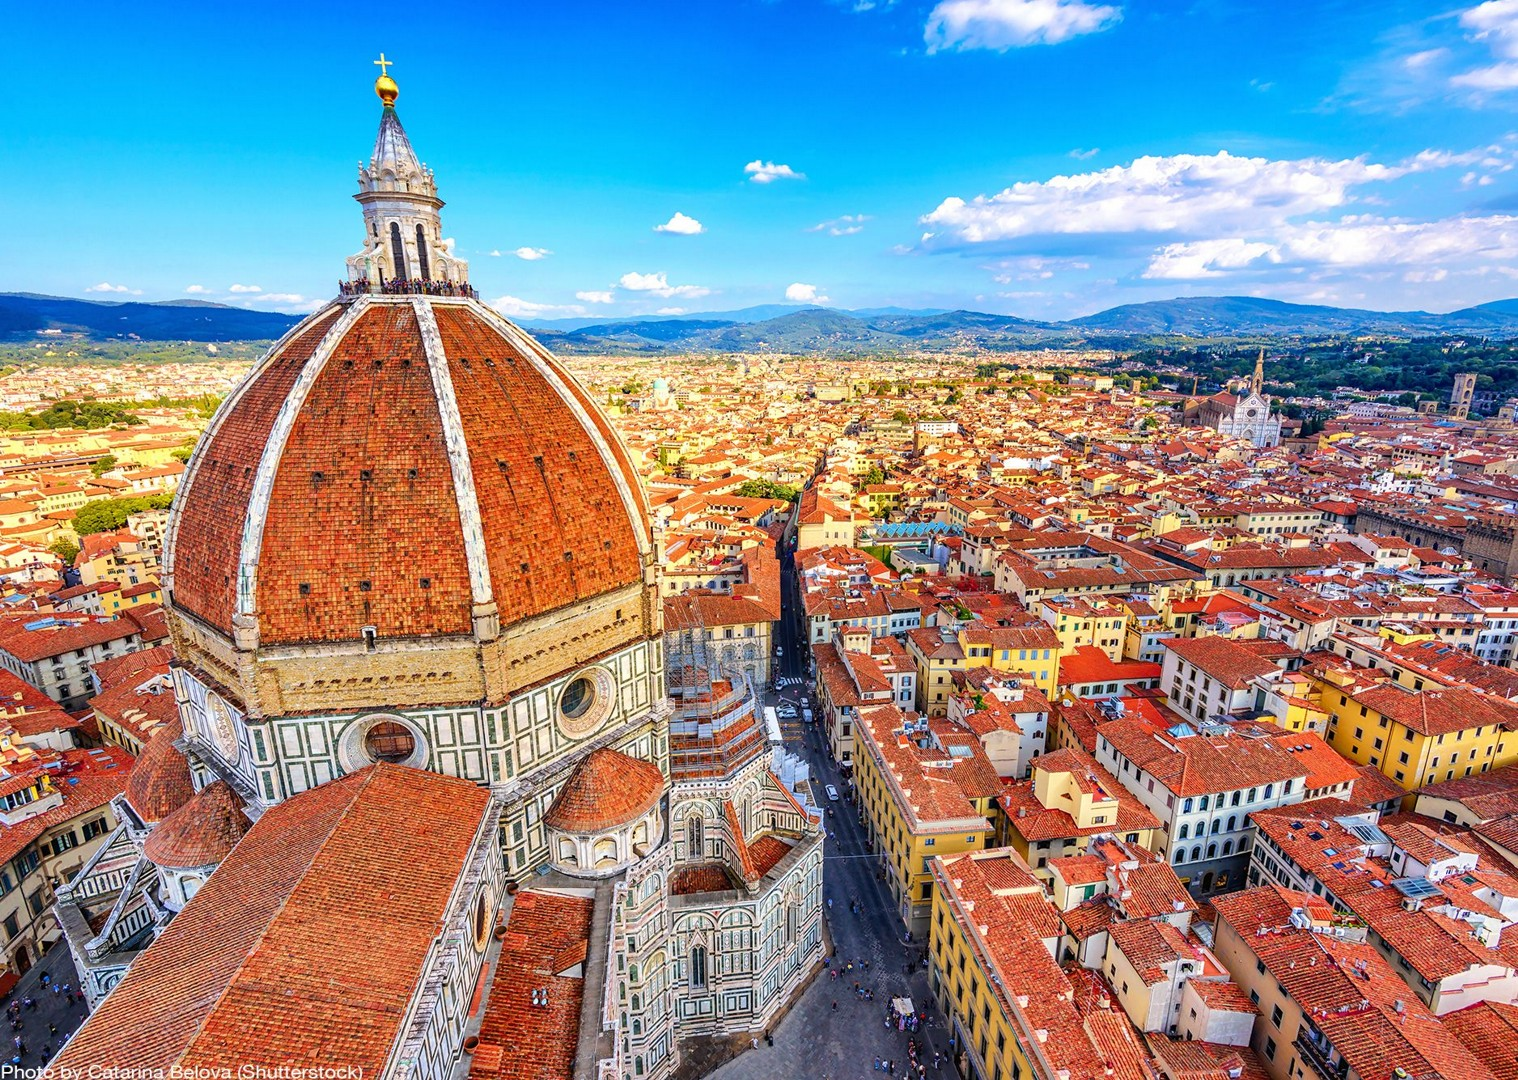 cathedral-de-santa-maria-del-fiore-florence-leisure-bike-tour.jpg - Italy - Tuscany - Pisa to Florence - Self-Guided Leisure Cycling Holiday - Italia Leisure and Family Cycling